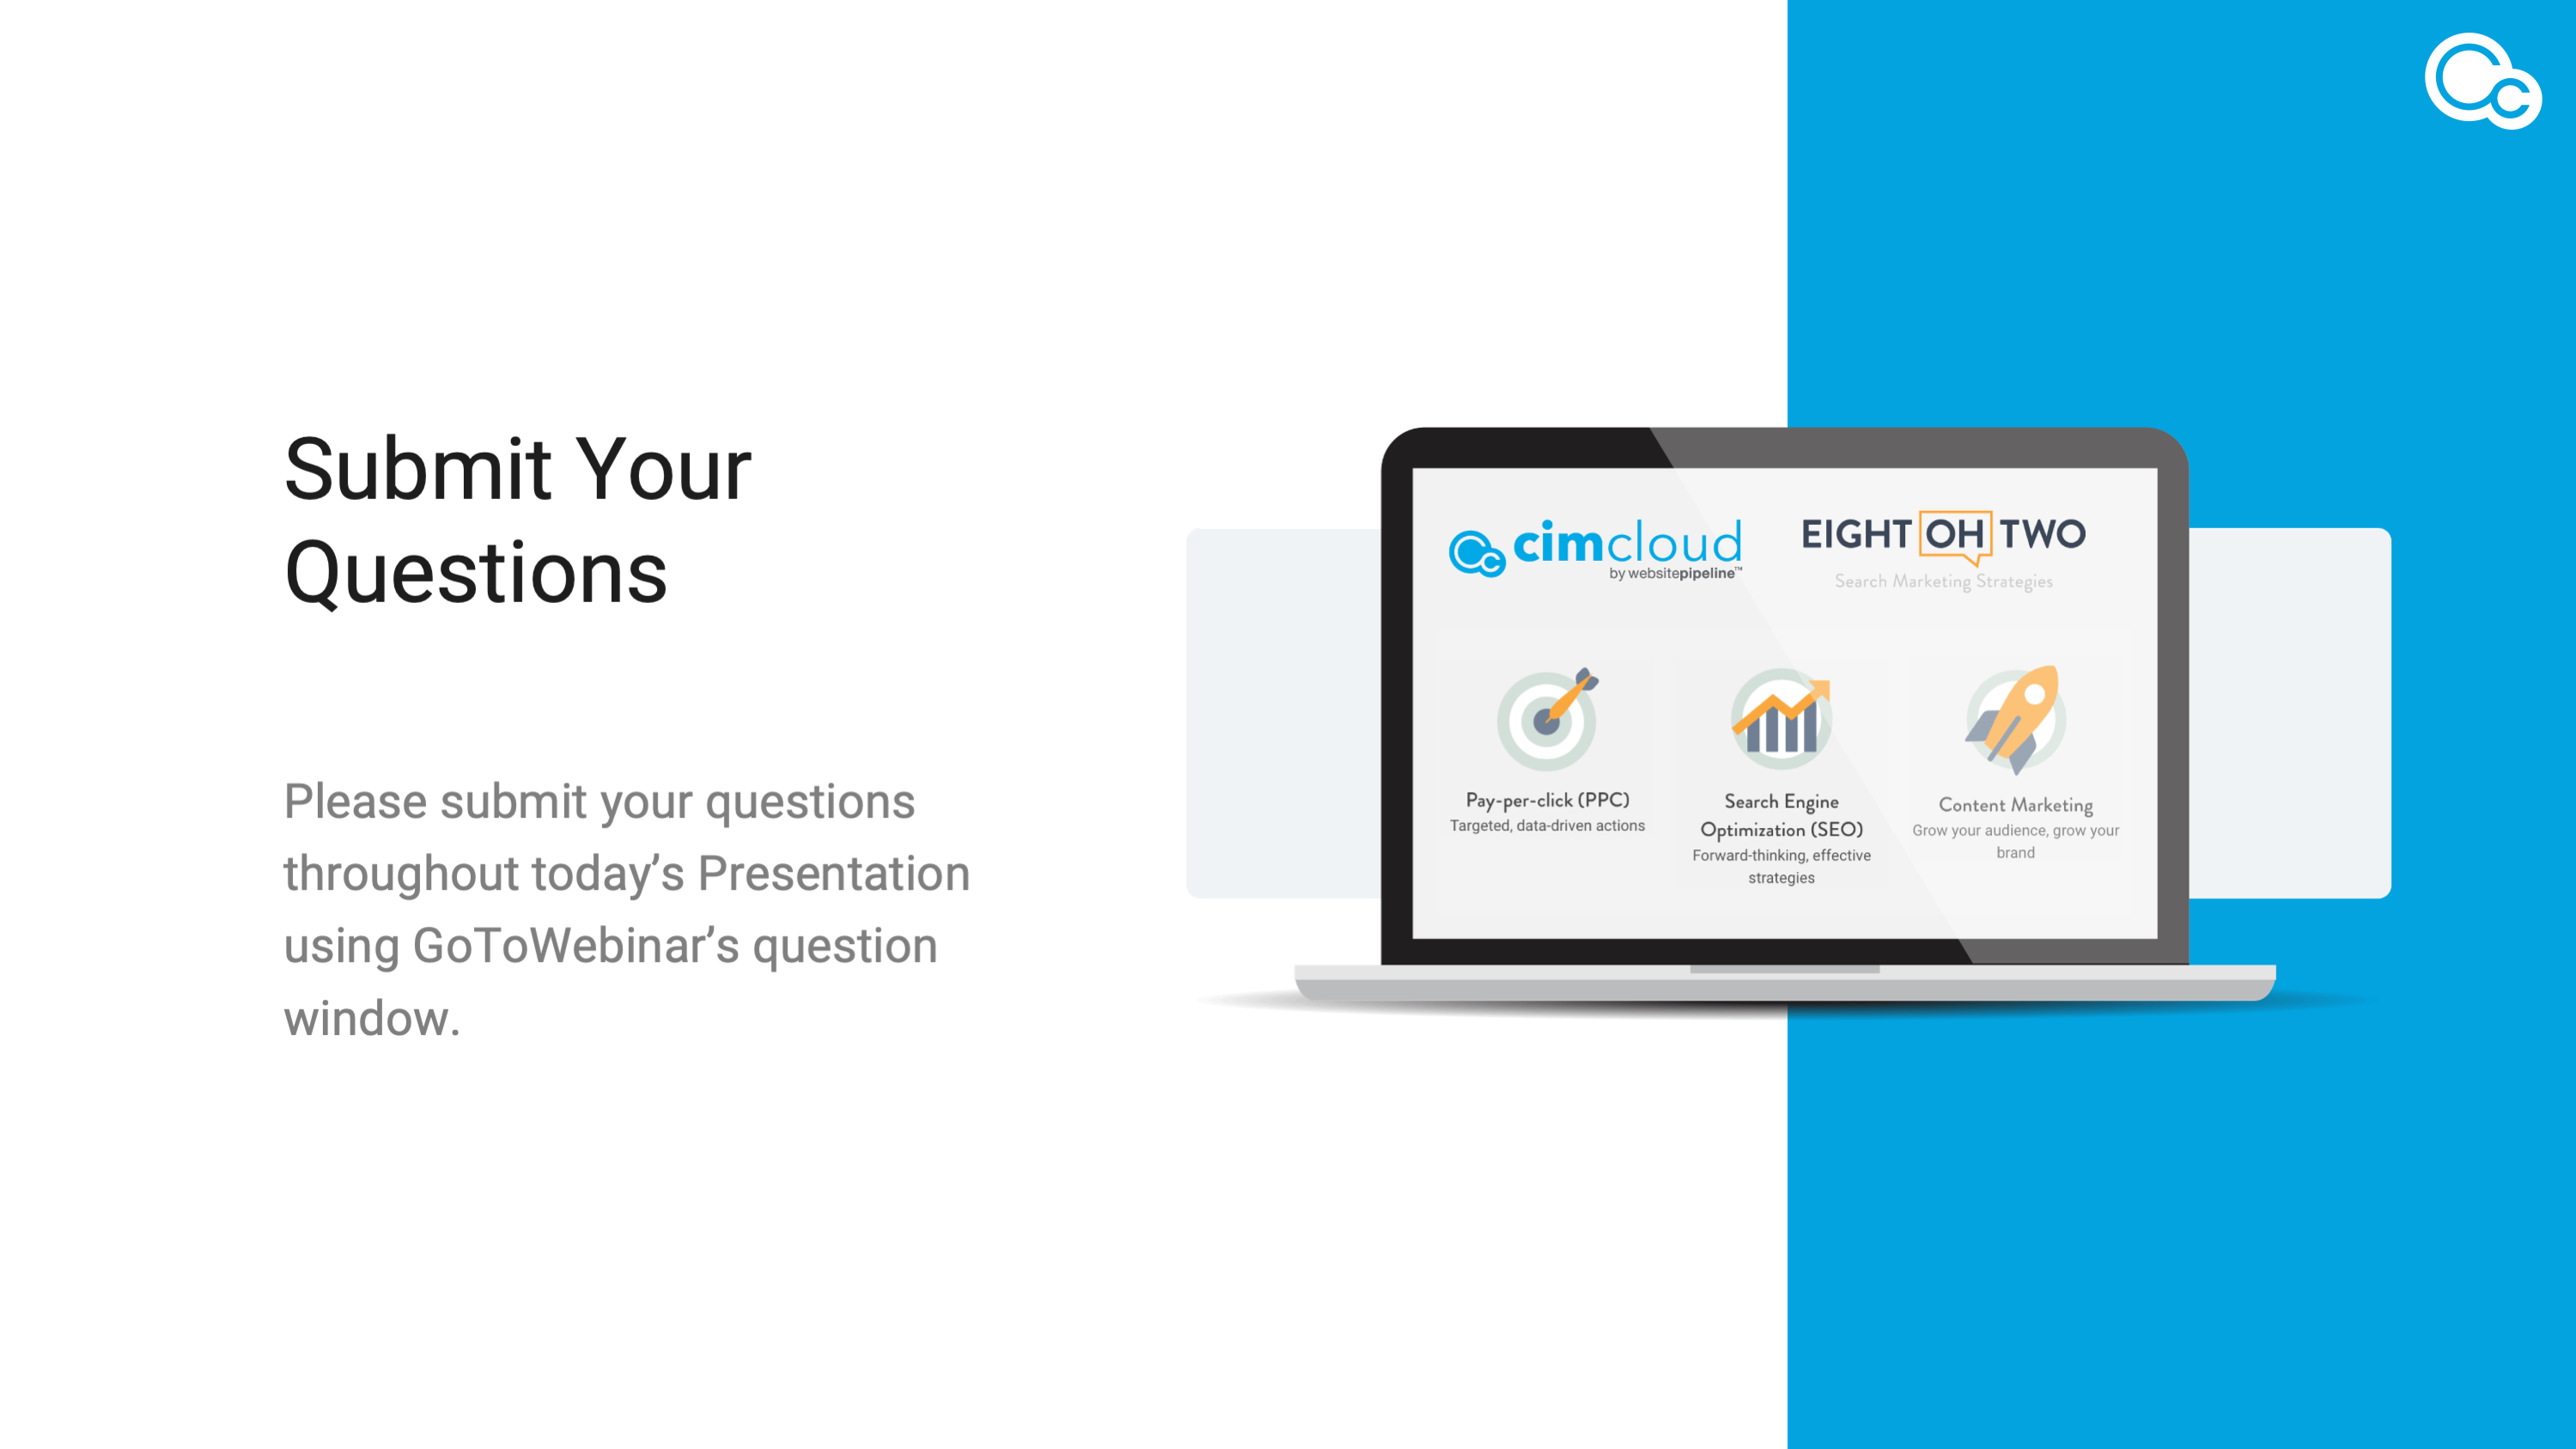 CIMcloud Search Marketing ''Ask Me Anything' Panel image